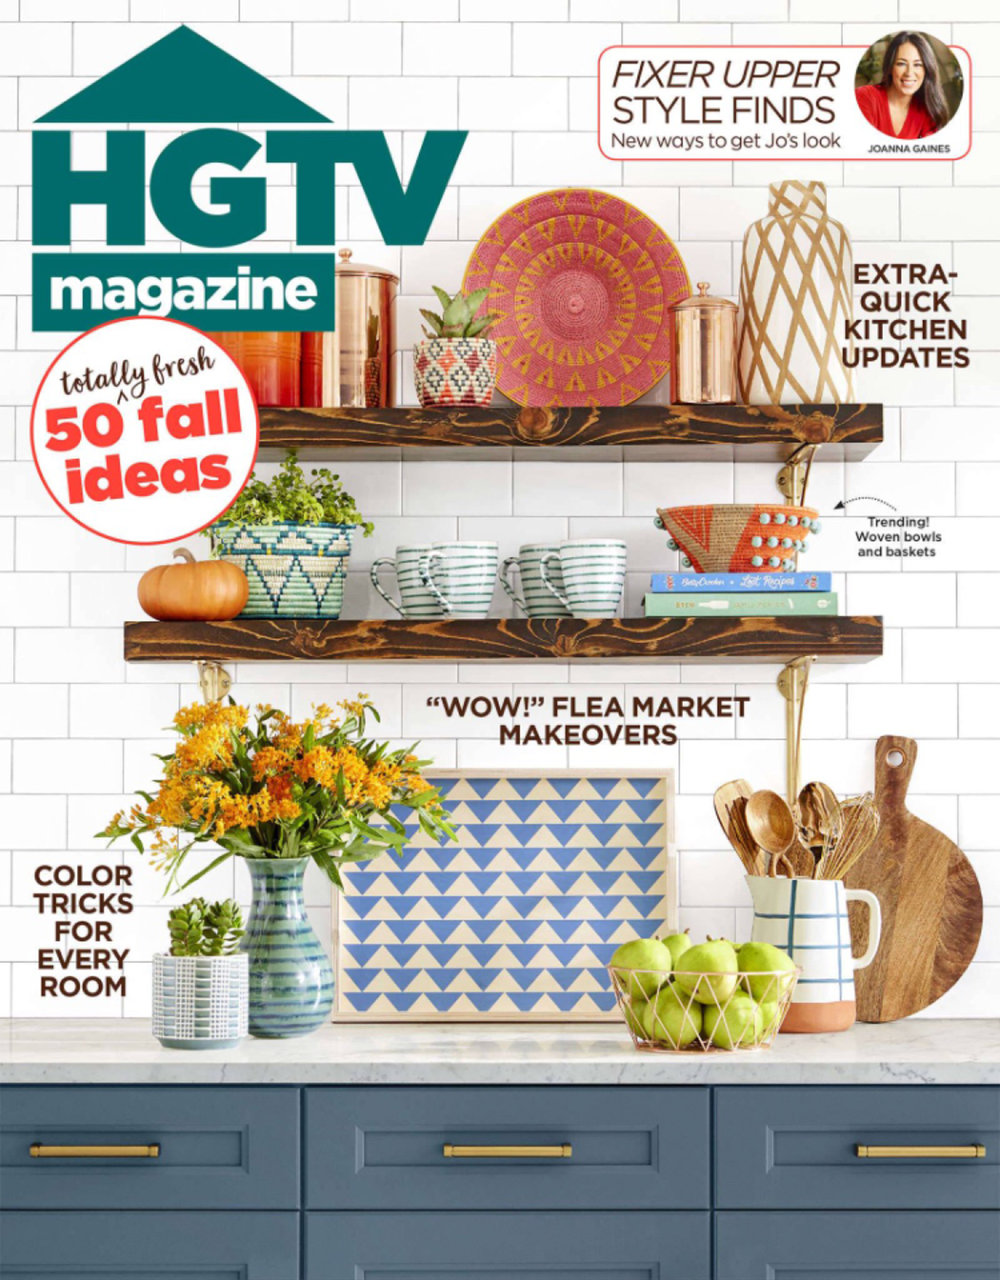 HGTV_COVER_OCT_2018_1.jpg